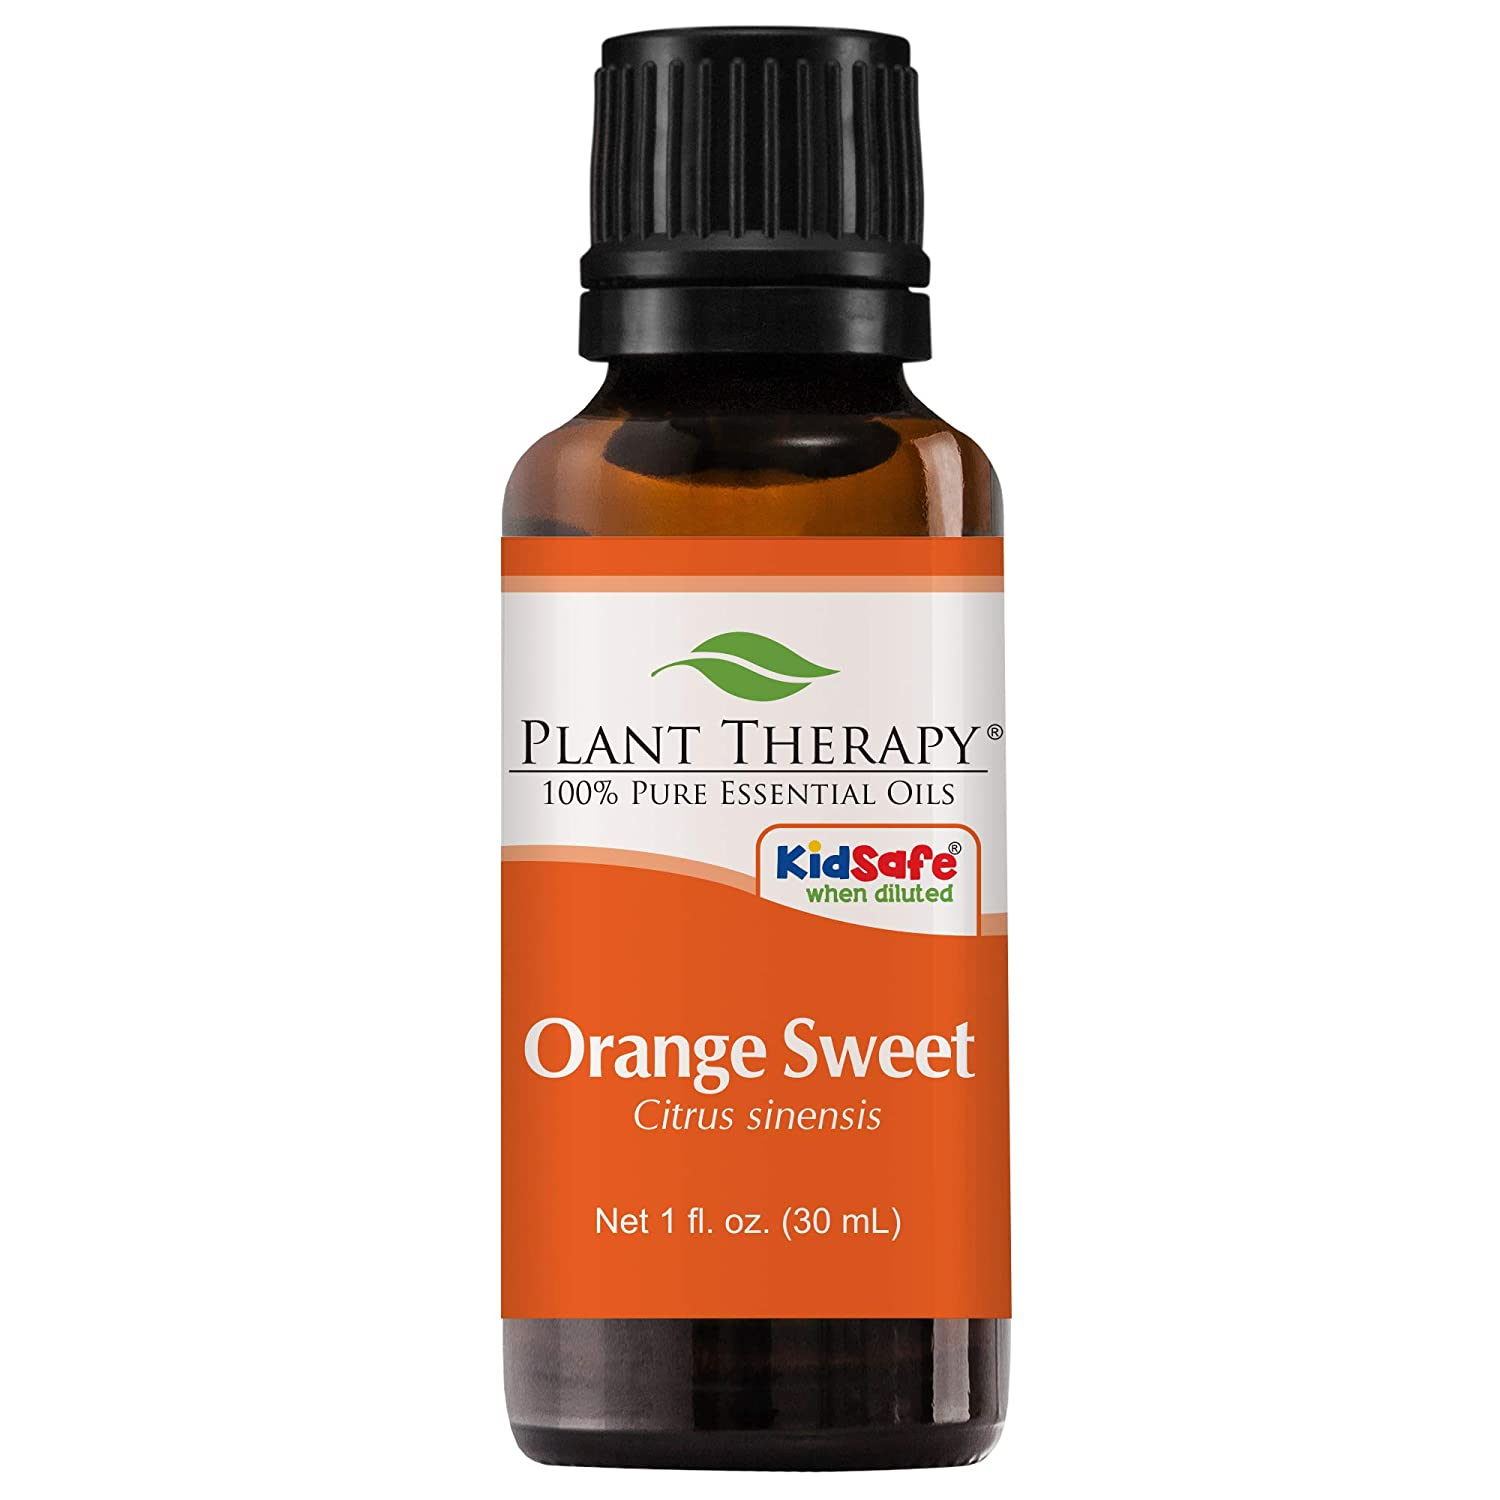 Plant Therapy Orange Sweet Essential Oil 100% Pure, Undiluted, Natural Aromatherapy, Therapeutic Grade 30 mL (1 oz)